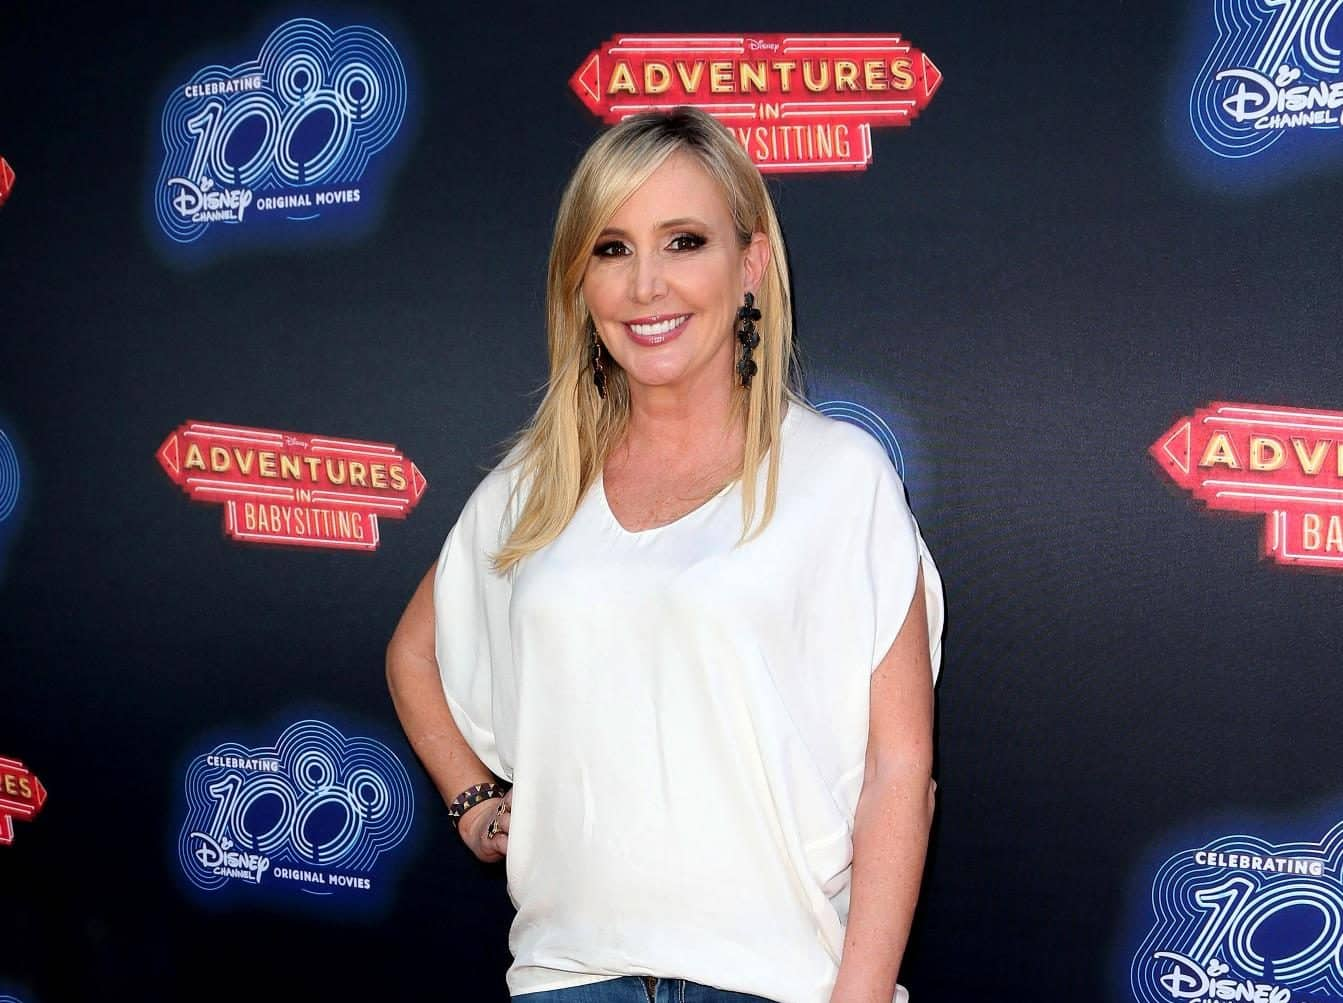 RHOC Star Shannon Beador's Million Dollar Divorce Settlement Revealed! Find Out How Much the Lump Sum and Monthly Support Is